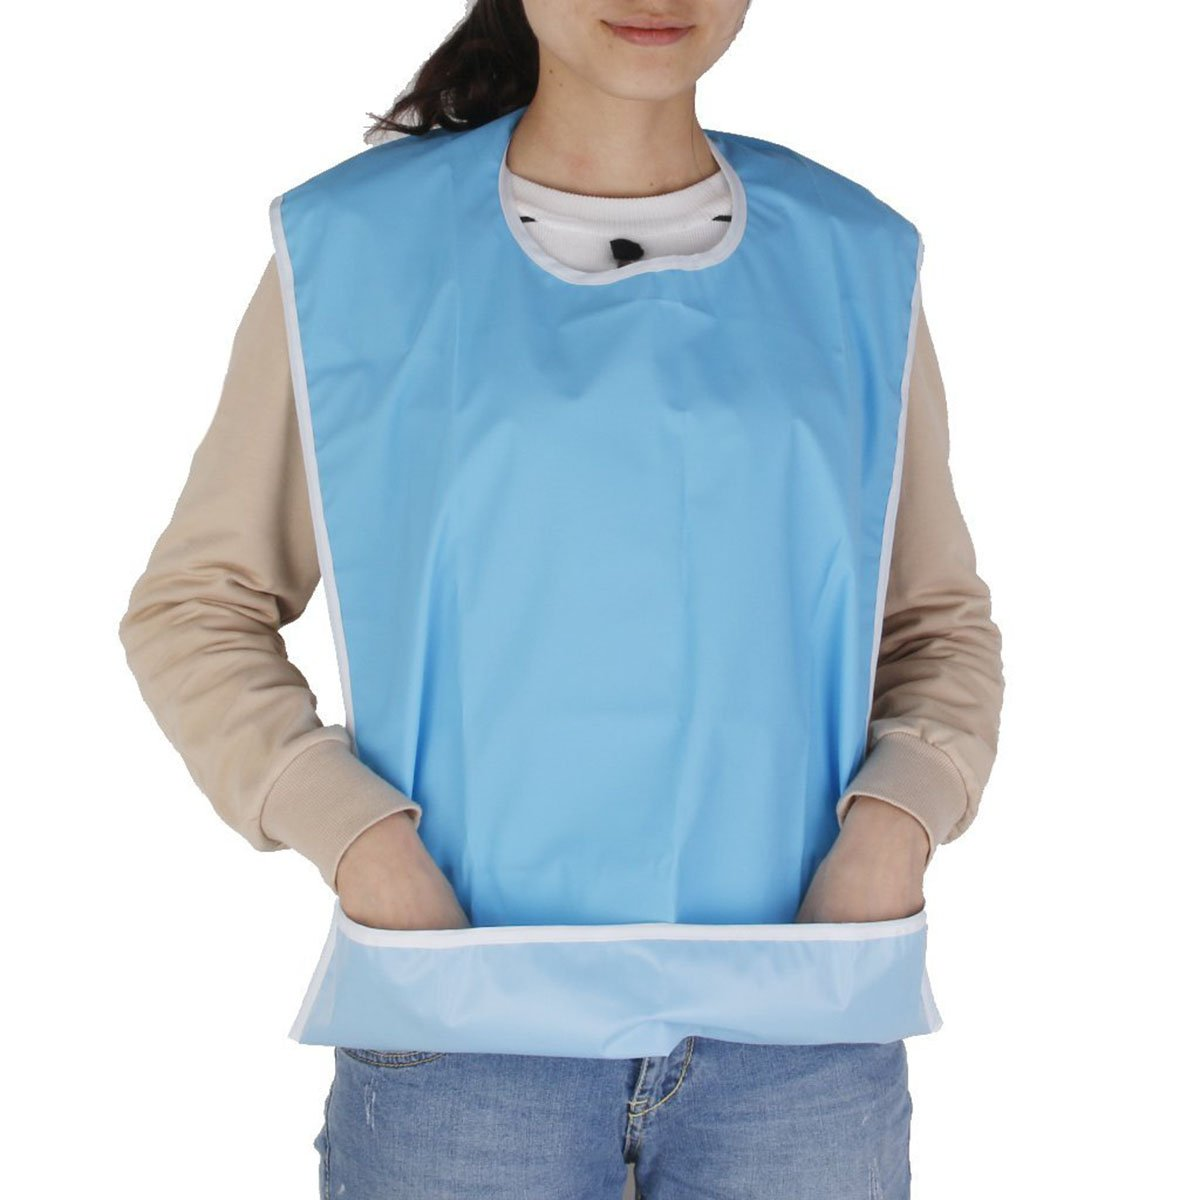 (Sky-blue) - NUOLUX Bib for Elderly Waterproof Mealtime Bib Protector Aid Apron (Light Blue)  スカイブルー B01M1YVW4F